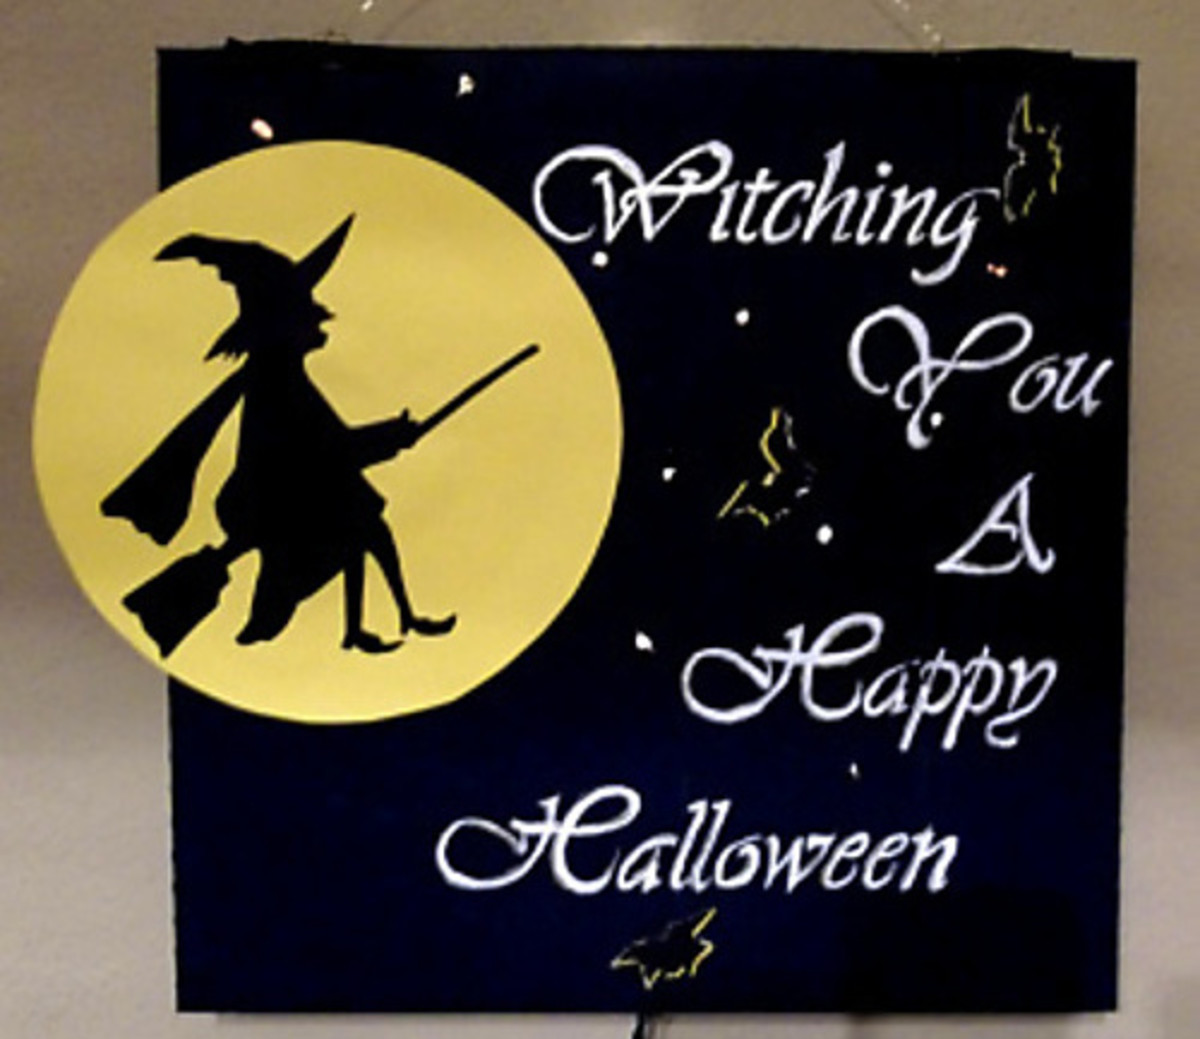 How to Make a Witchy Halloween Decoration Out of a Pizza Box